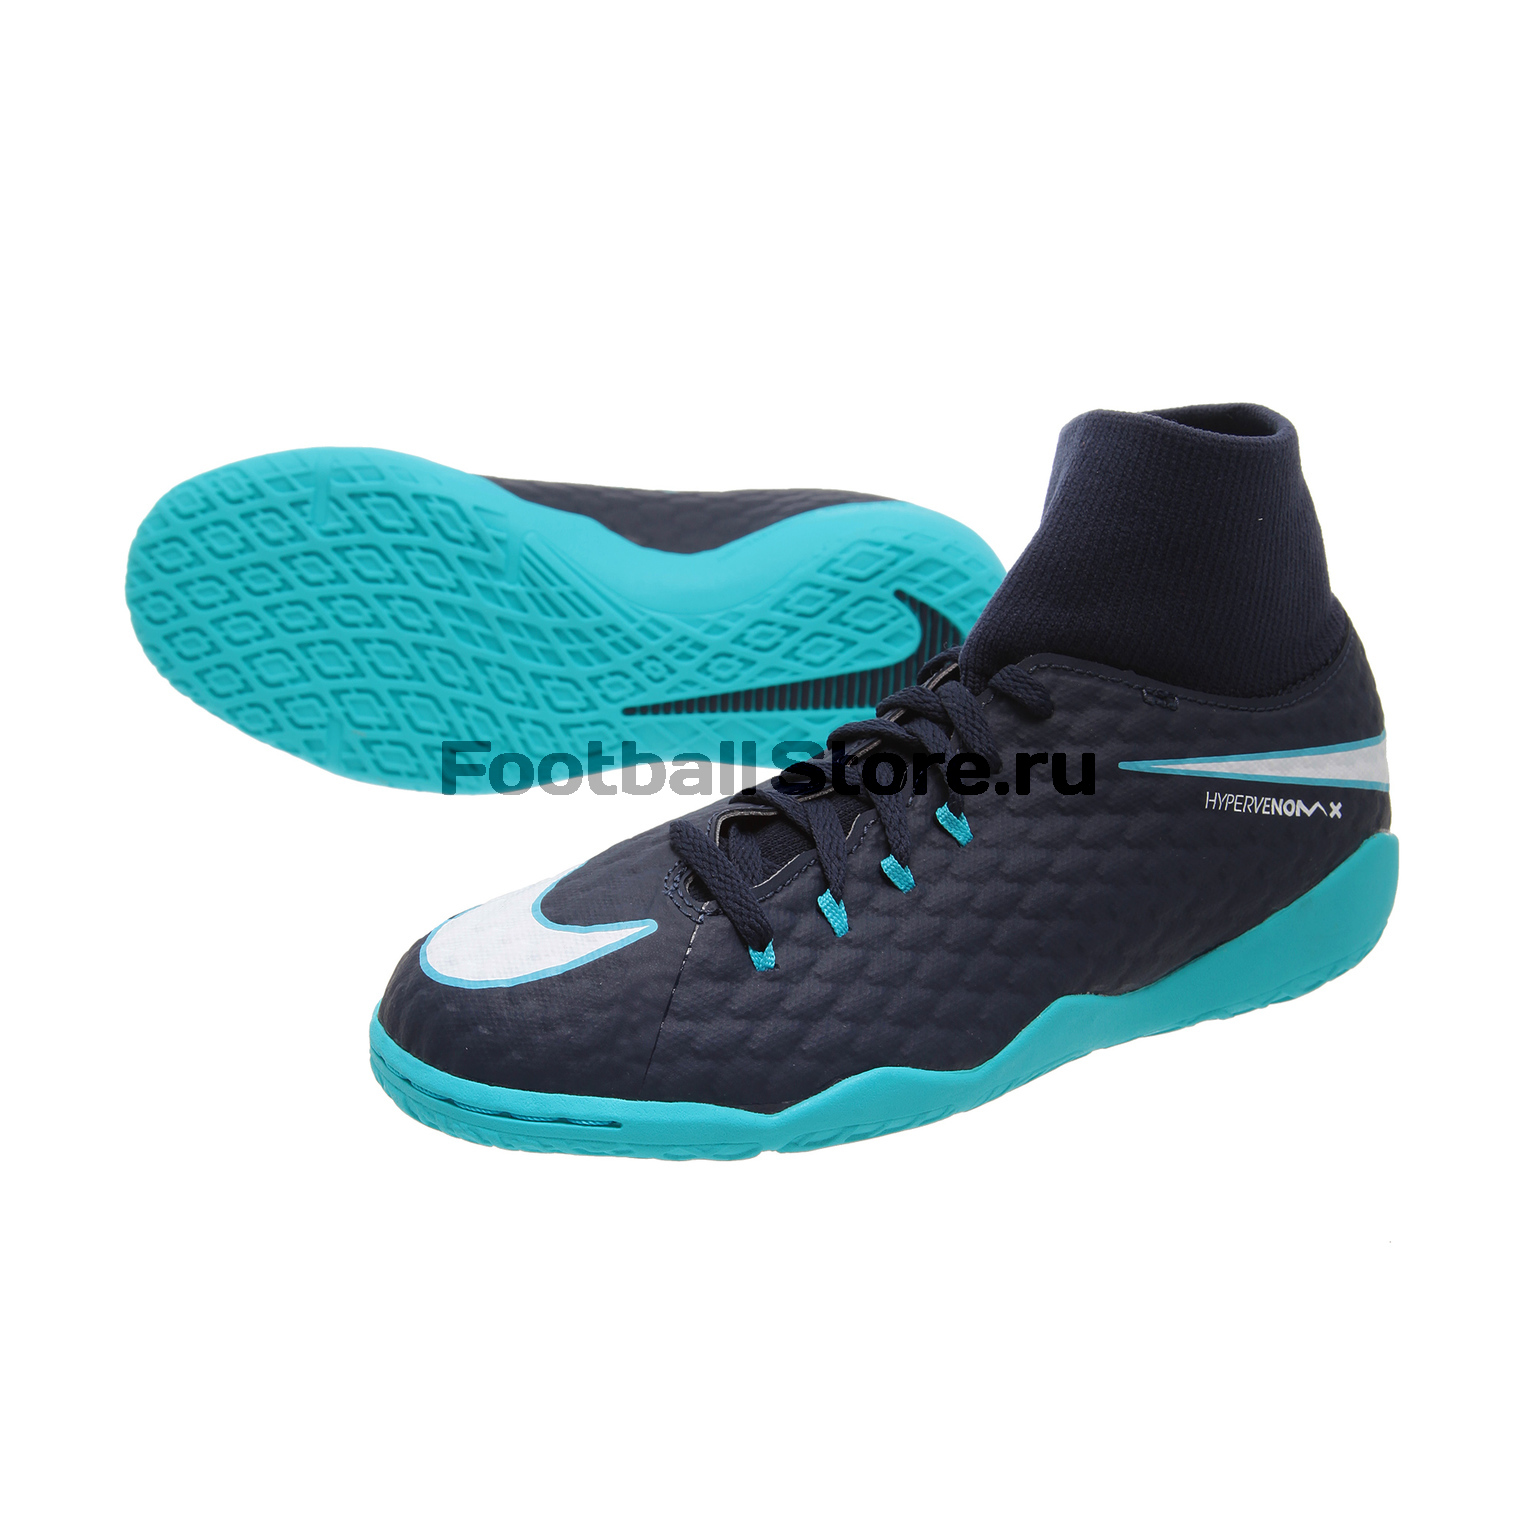 Обувь для зала Nike HypervenomX Phelon 3 DF IC 917768-414 детские бутсы nike бутсы nike jr phantom 3 elite df fg ah7292 081